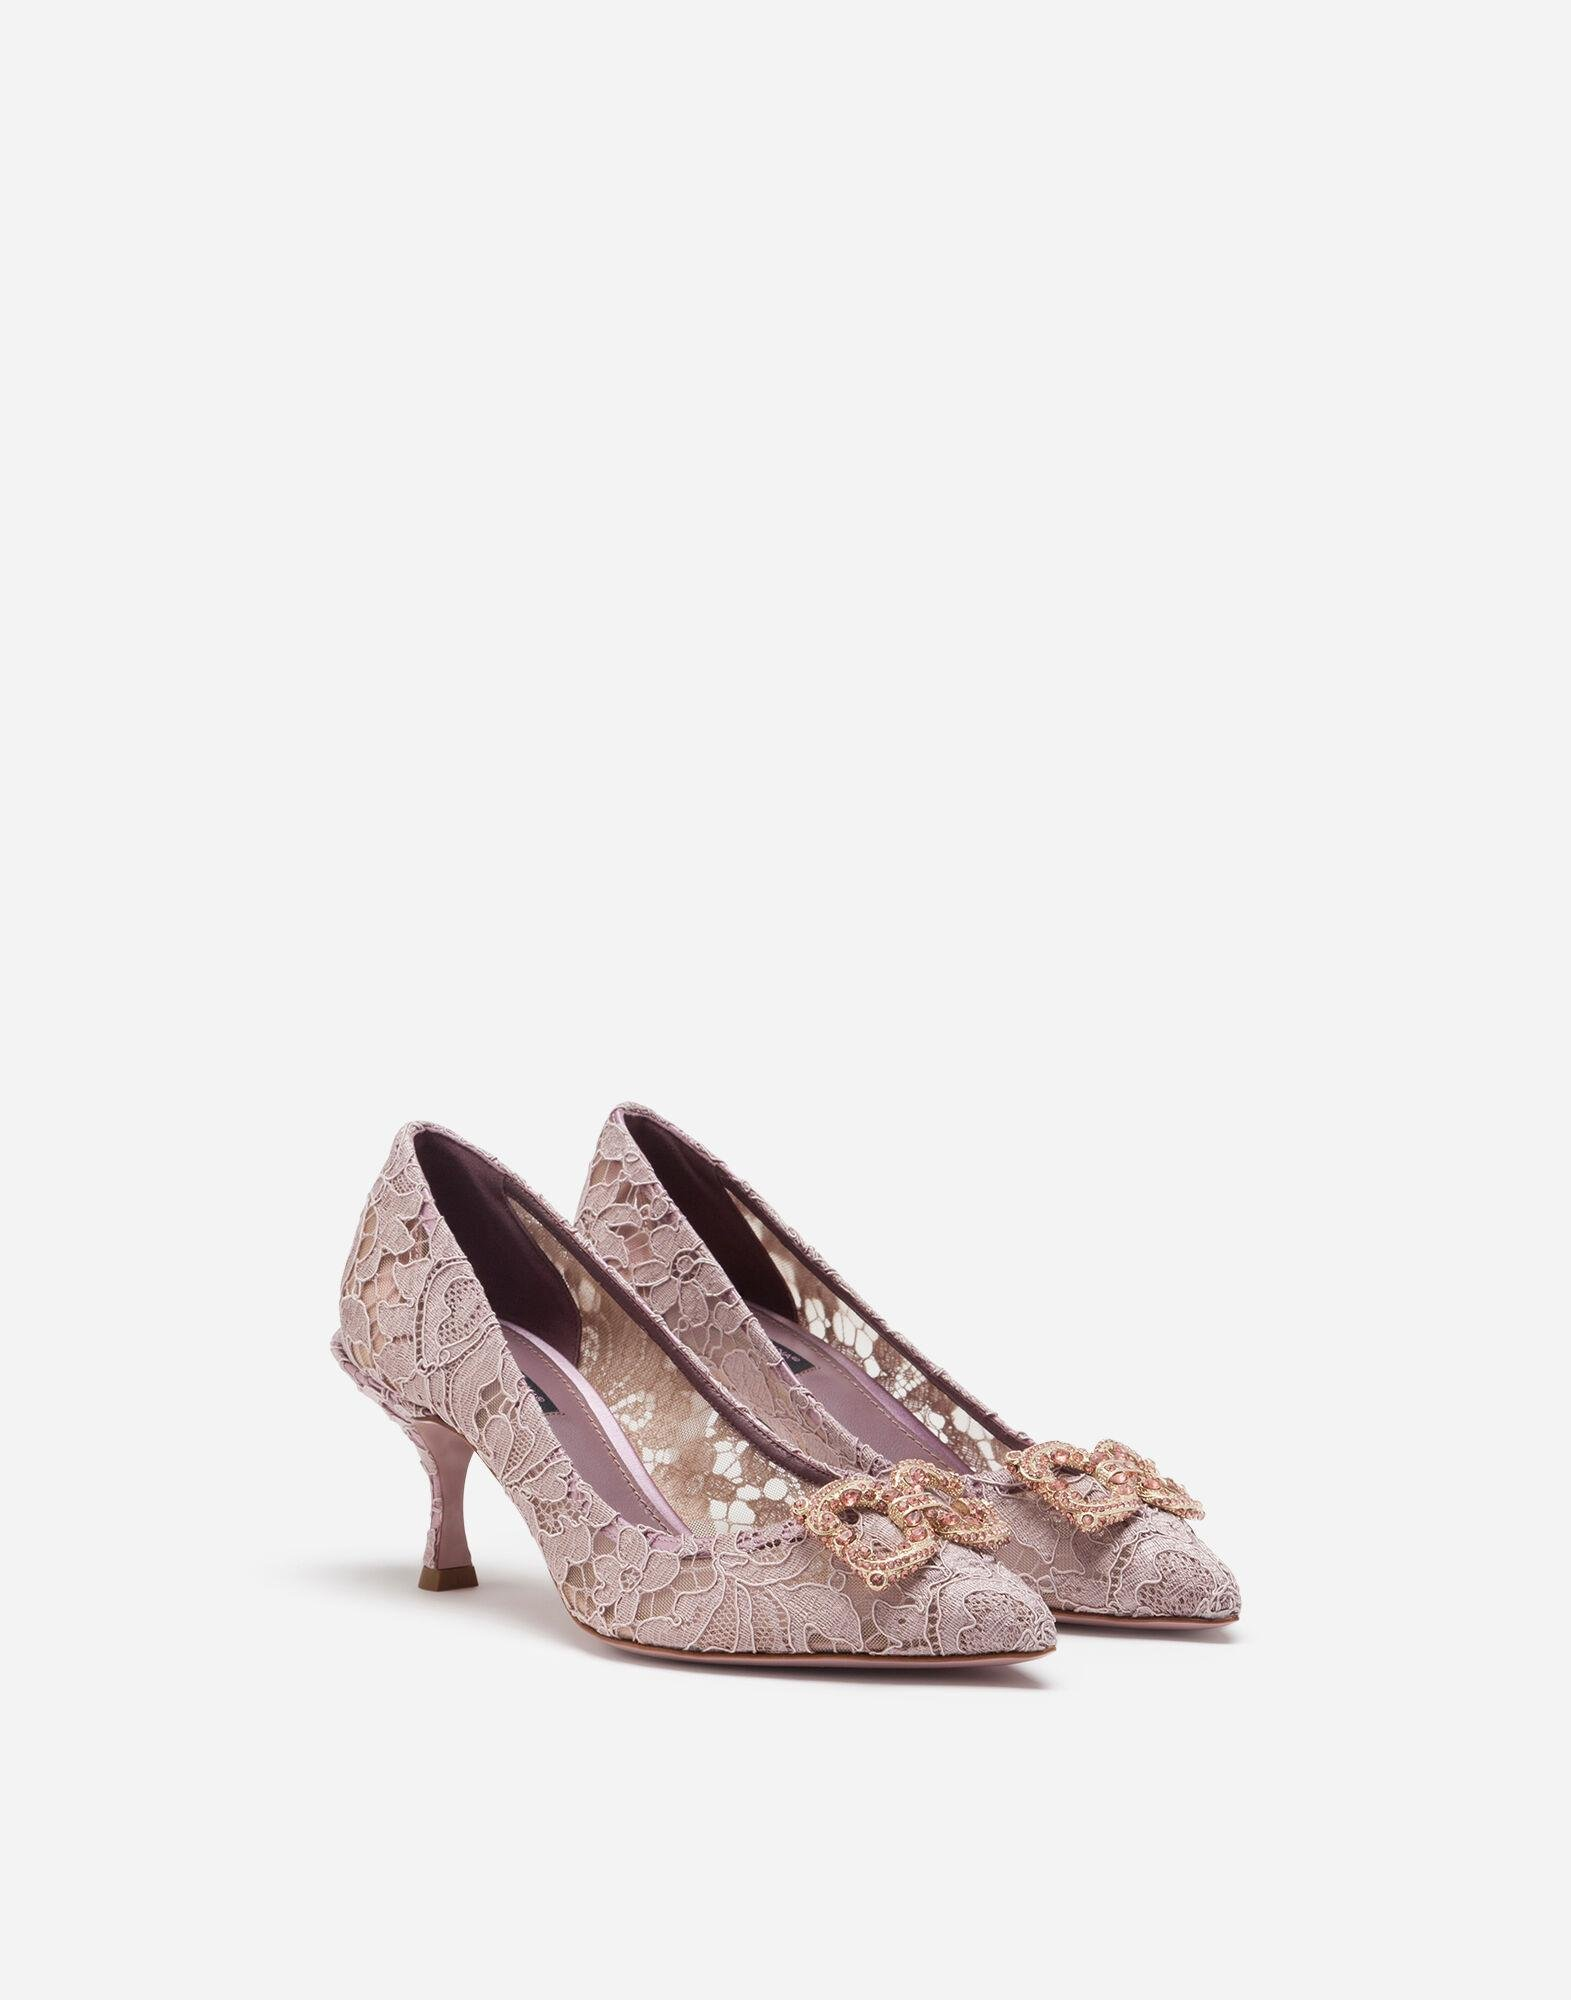 Taormina lace pumps with DG Amore logo 1